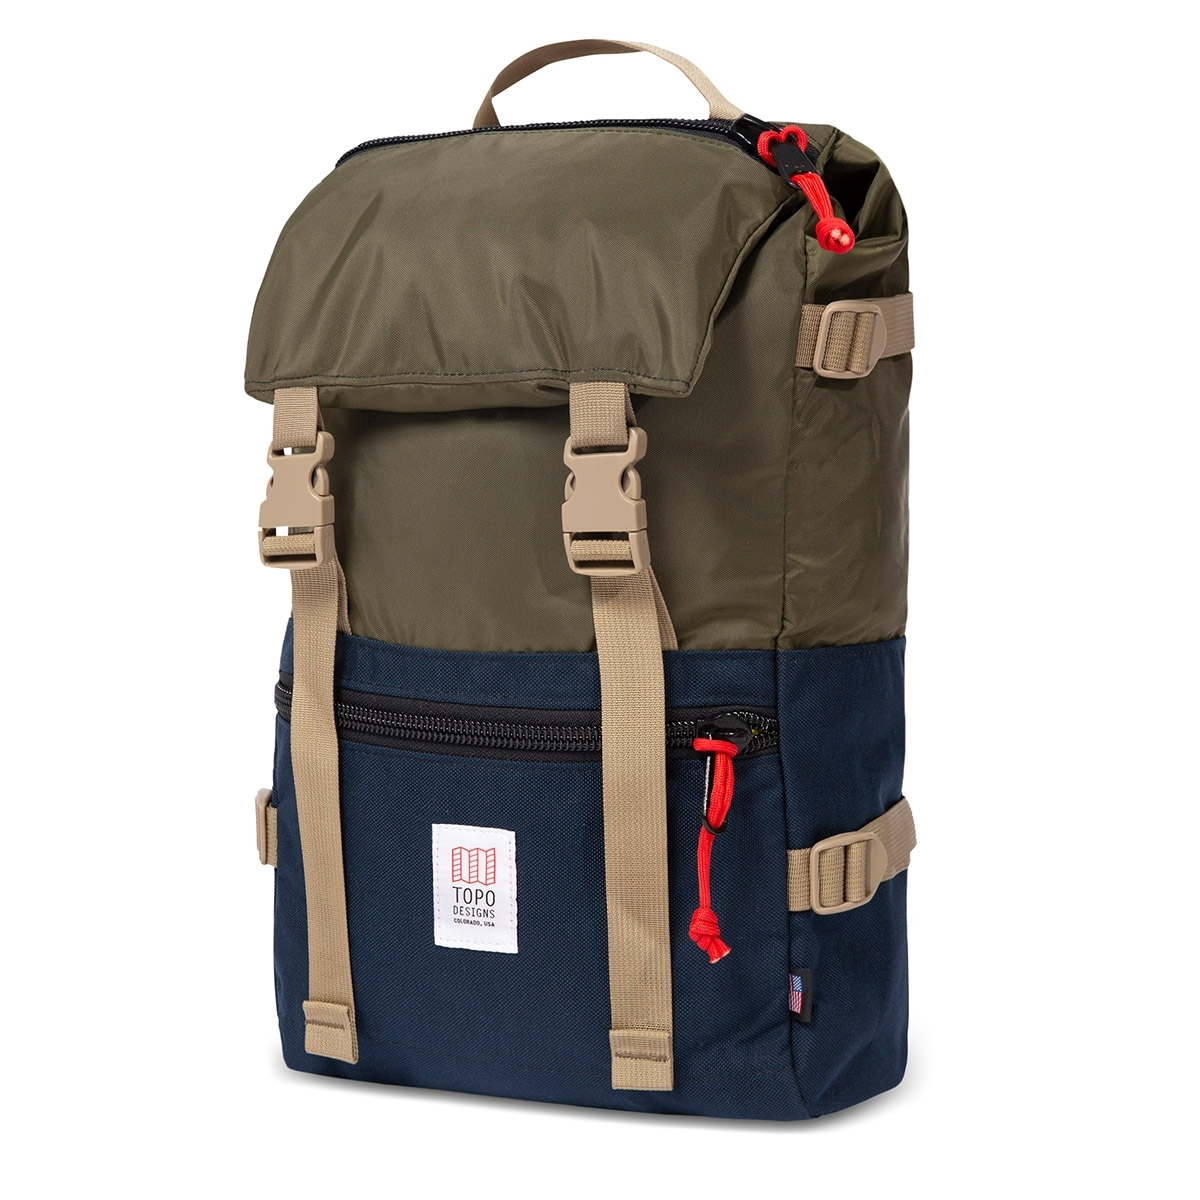 Topo Designs Rover Pack Olive/Navy